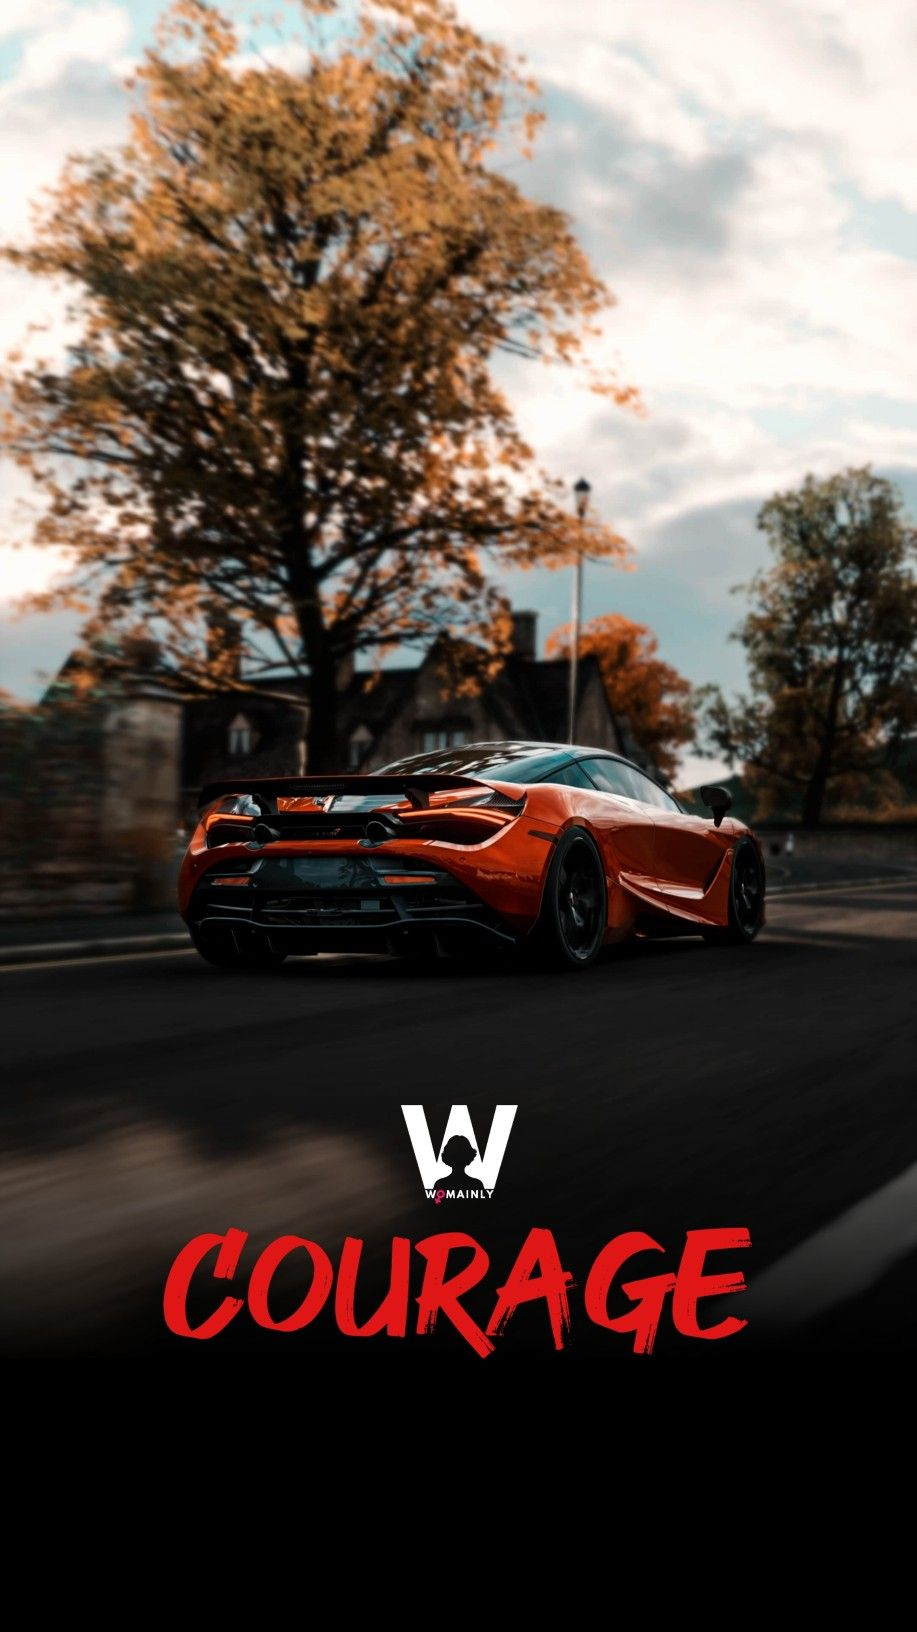 Desktop and tablet windows 11 and 10 live backgrounds. Car Wallpaper Courage Hd Wallpaper Iphone Iphone Wallpaper 4k Wallpaper Iphone